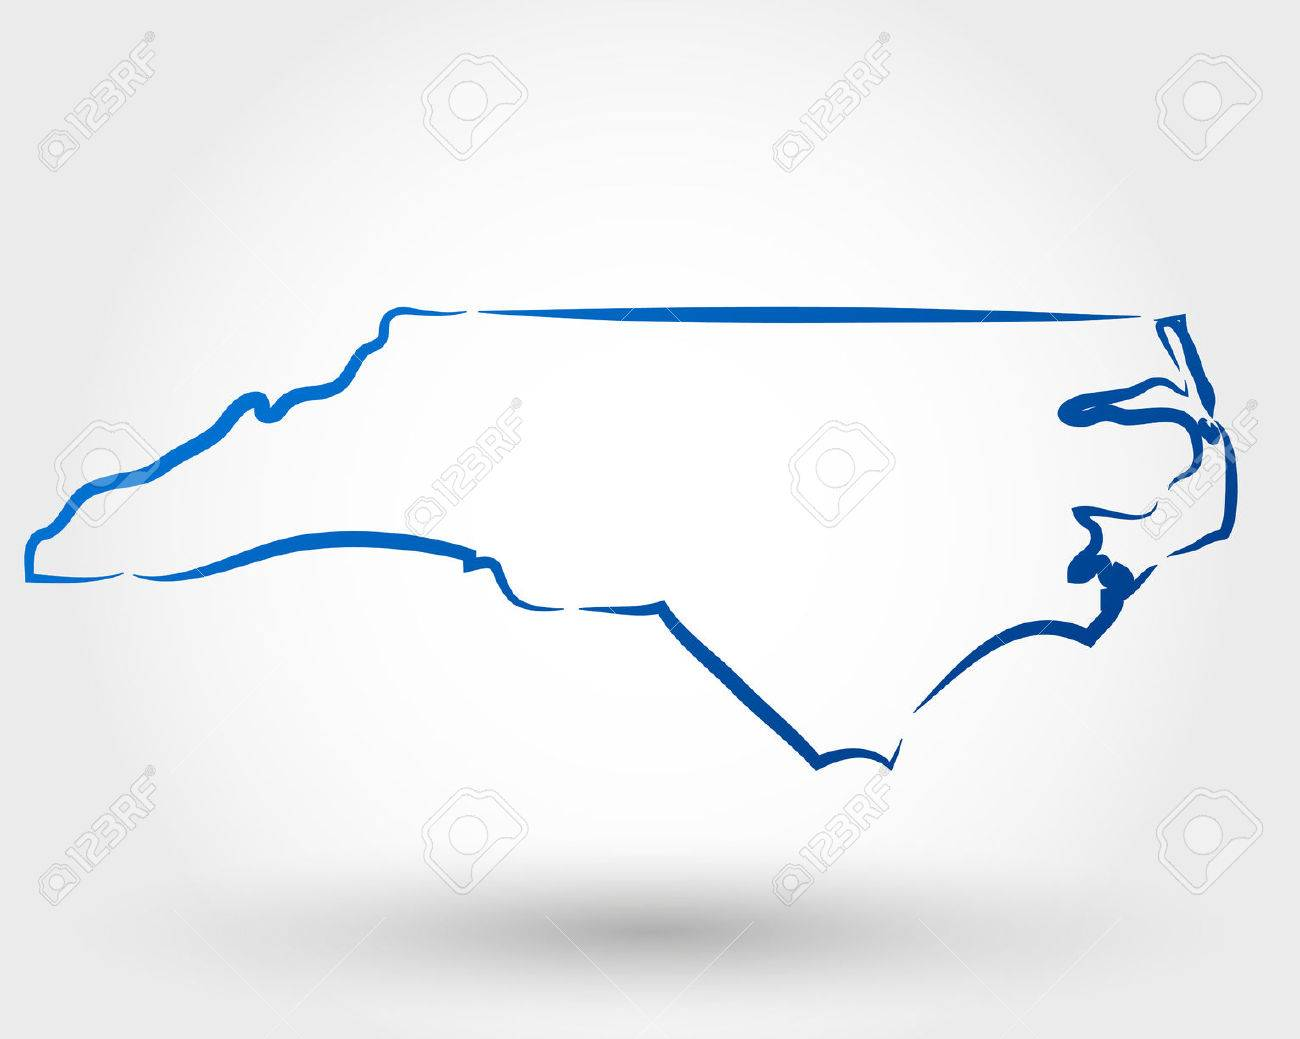 Map Of North Carolina Map Concept Royalty Free Cliparts Vectors - Where is nc on the us map